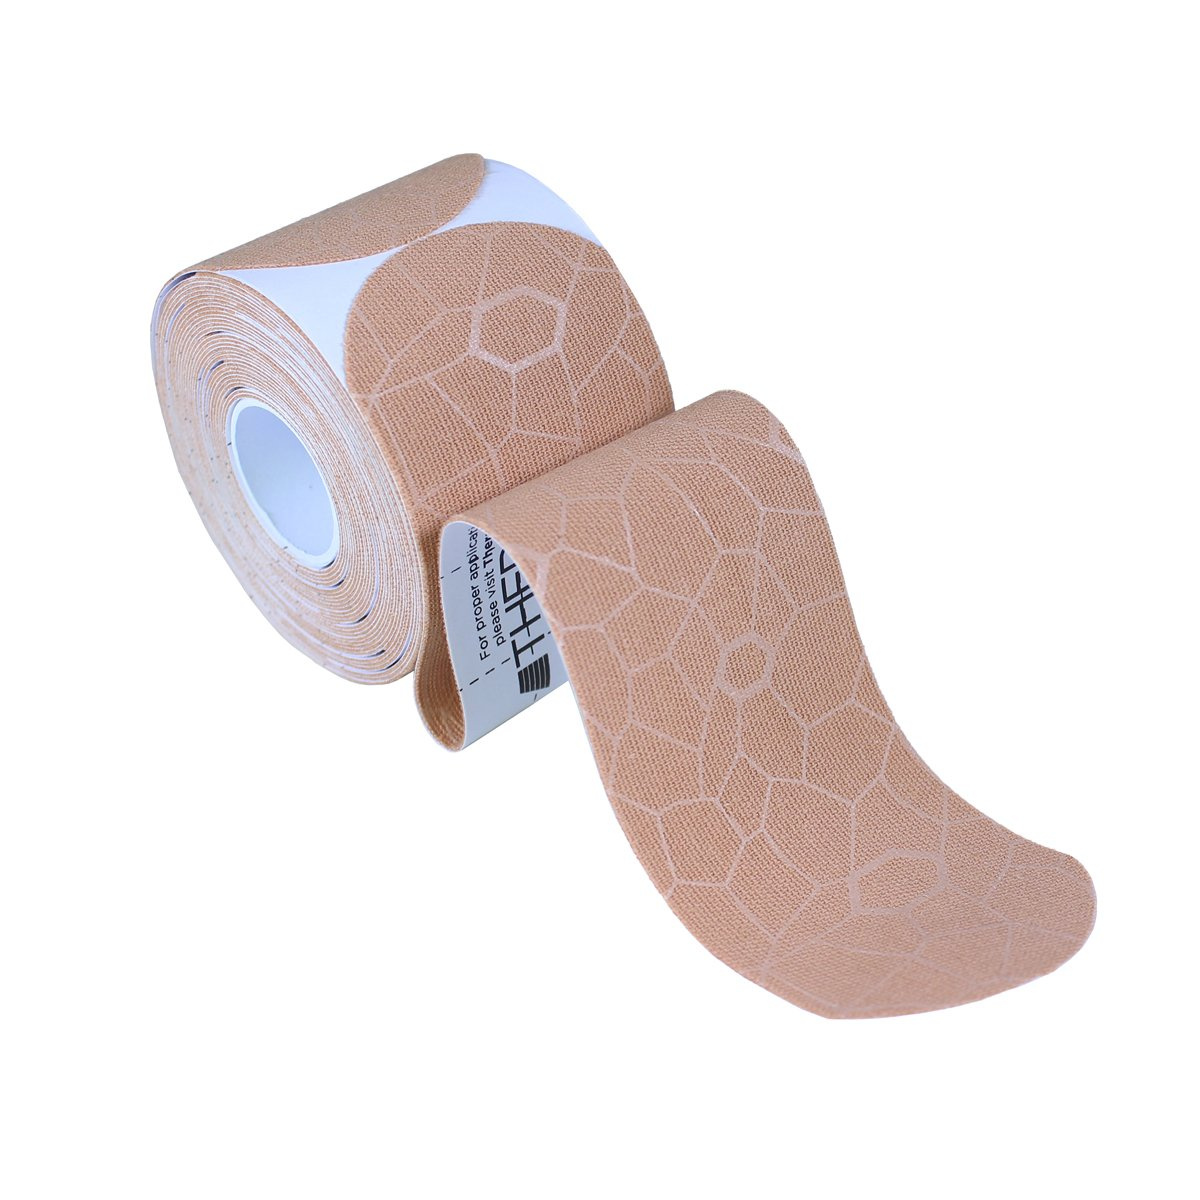 TheraBand Kinesiology Tape, Waterproof Physio Tape for Pain Relief, Muscle & Joint Support, Standard Roll with XactStretch Application Indicators, 2'' X 10'' Strips, 20 Precut Strips, Beige/Beige